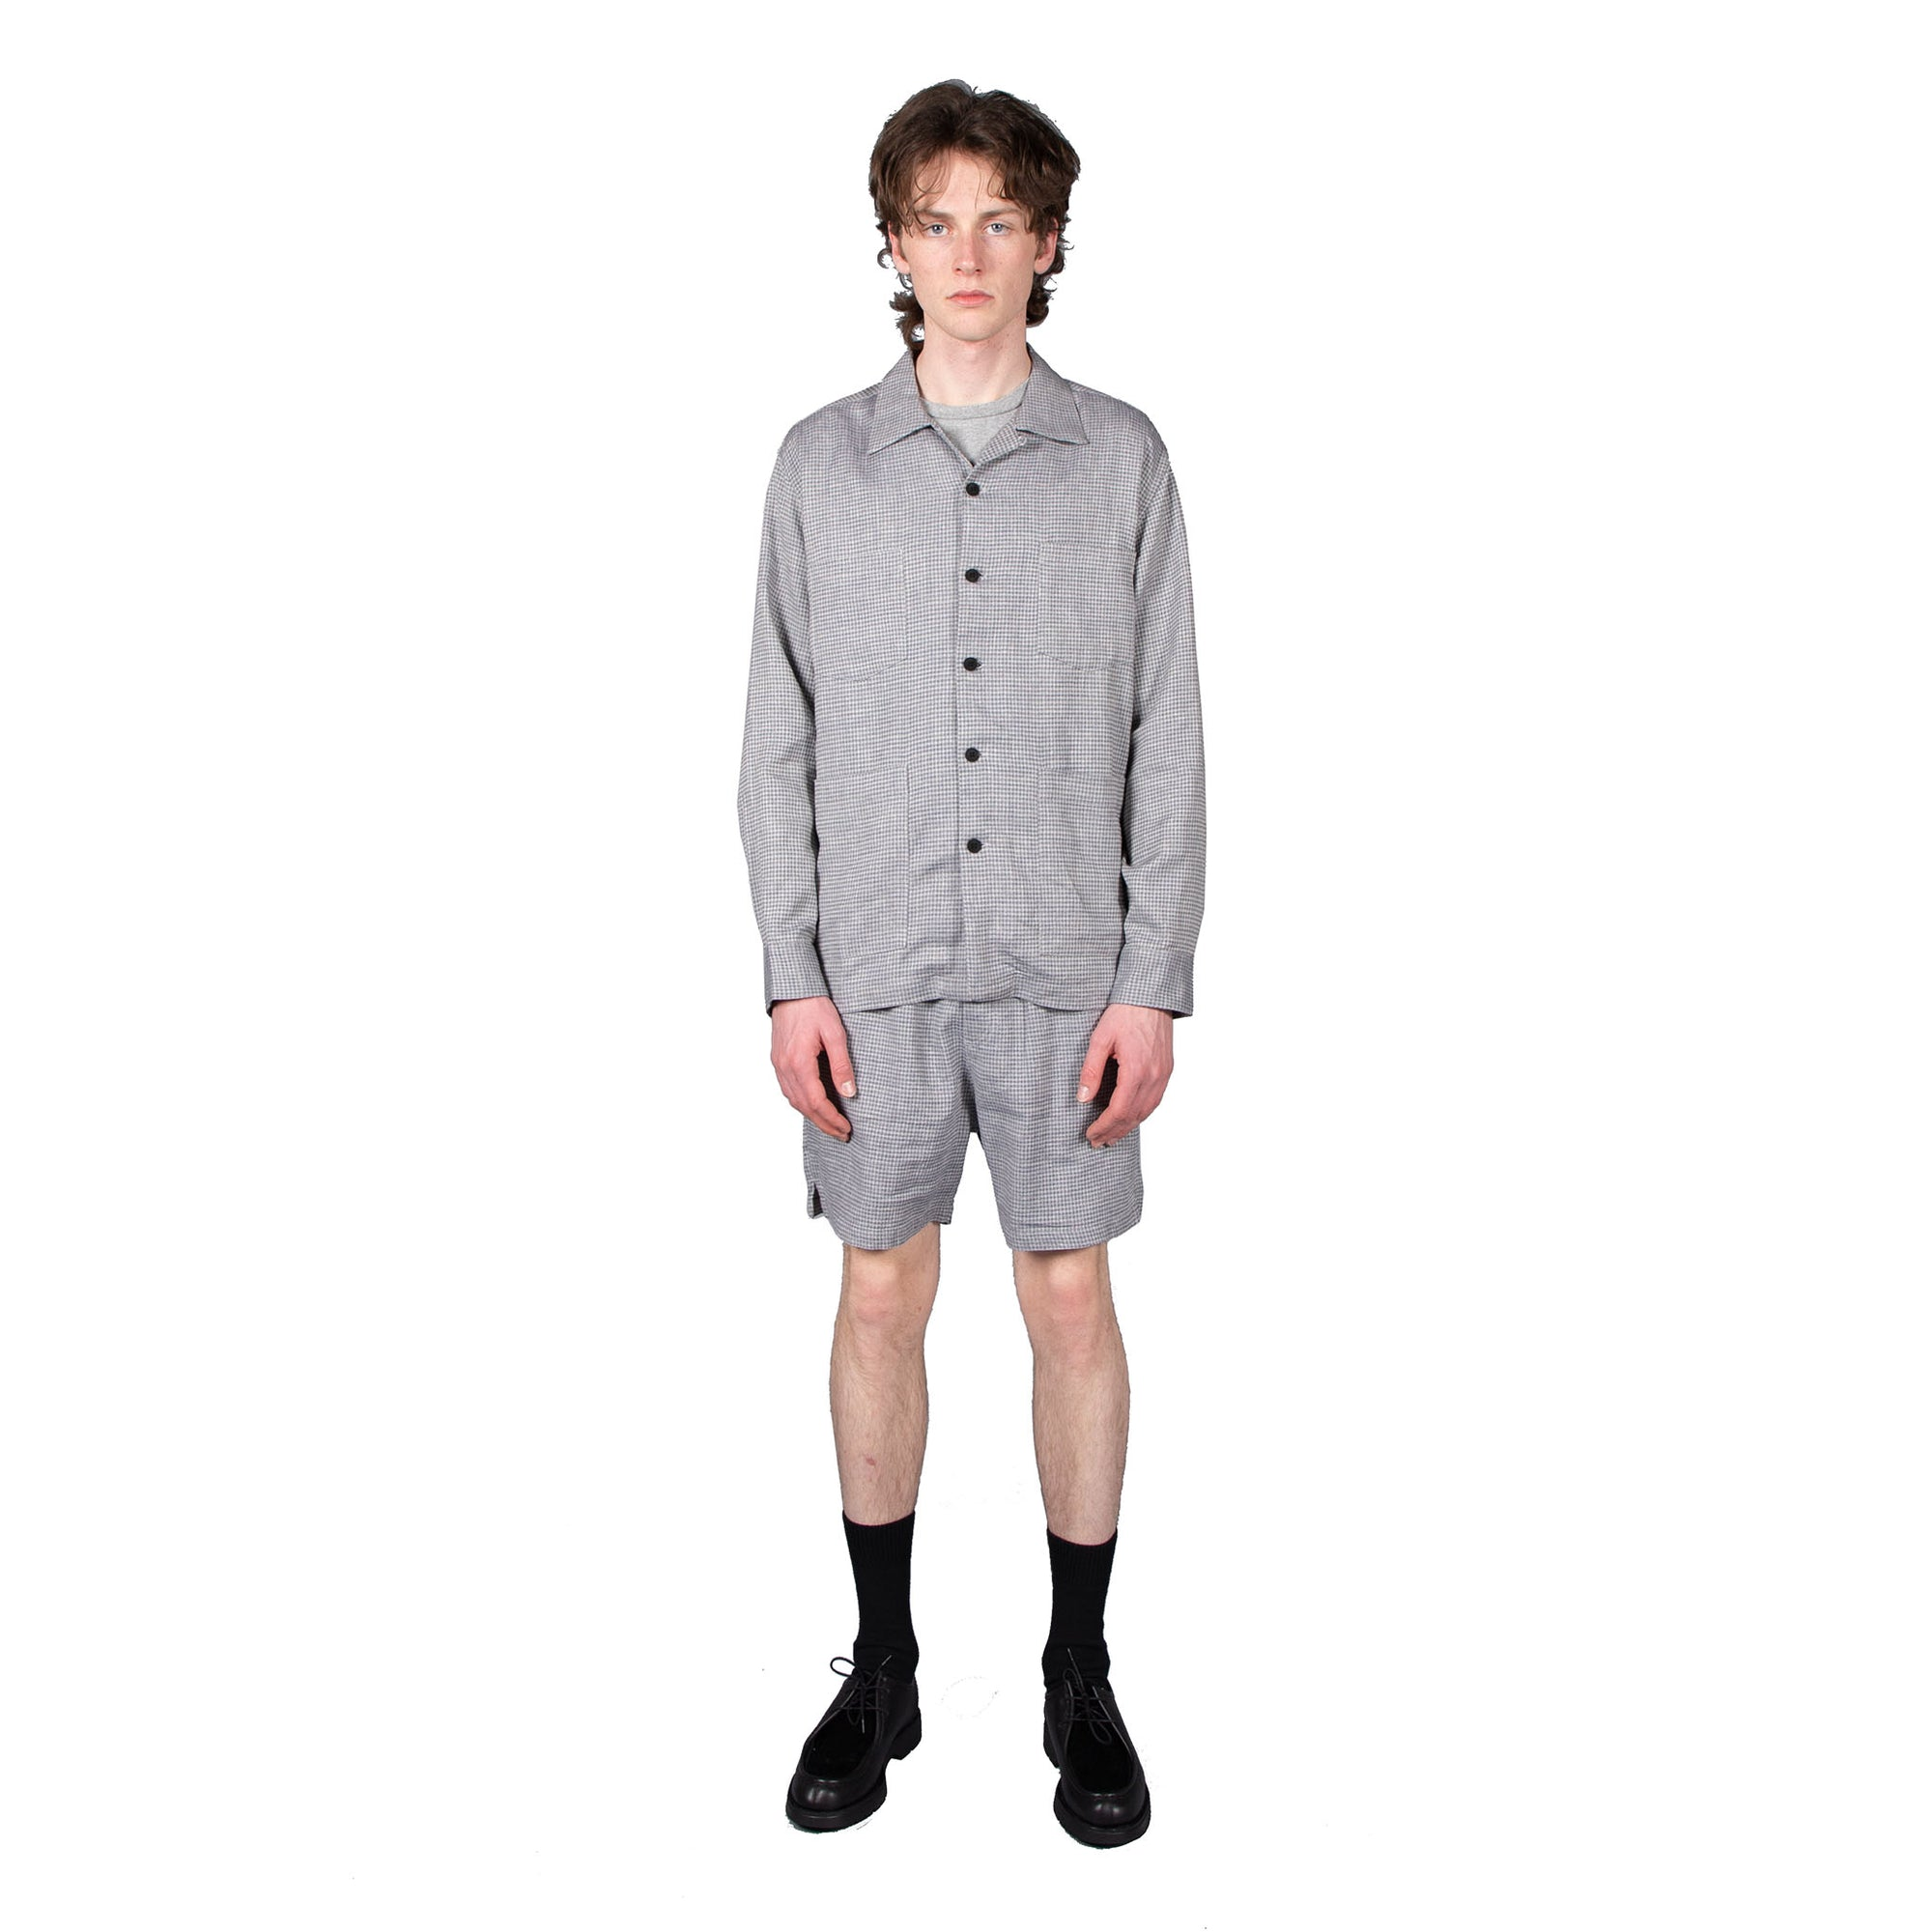 Shop Schnayderman's shorts online Melange shorts check blue grey